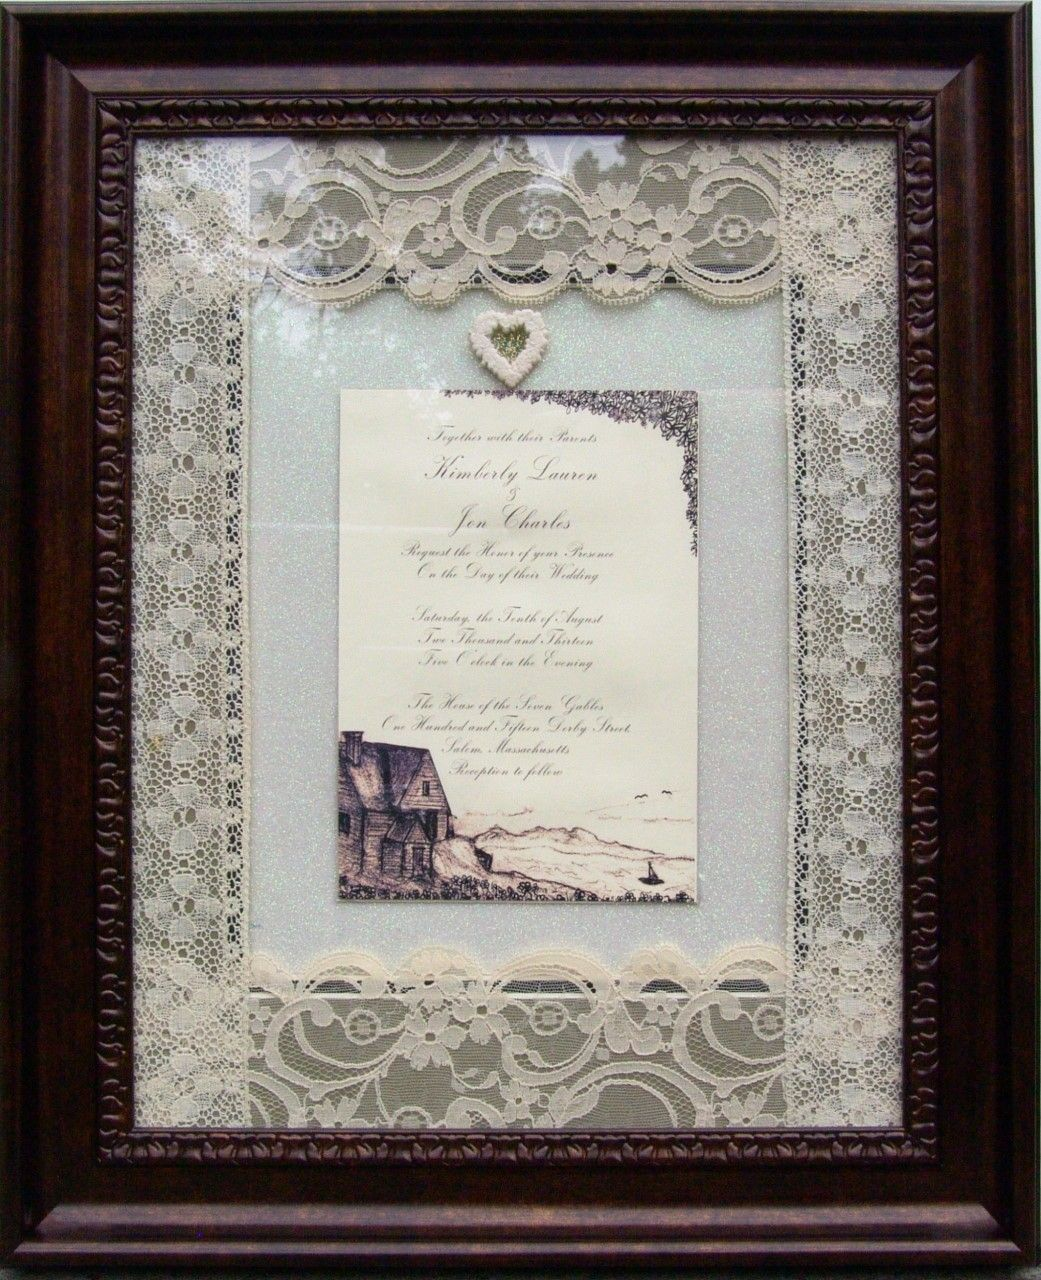 Custom made framed personalized wedding invitation preservation custom made framed personalized wedding invitation preservation keepsake elegant gift boutique negle Gallery